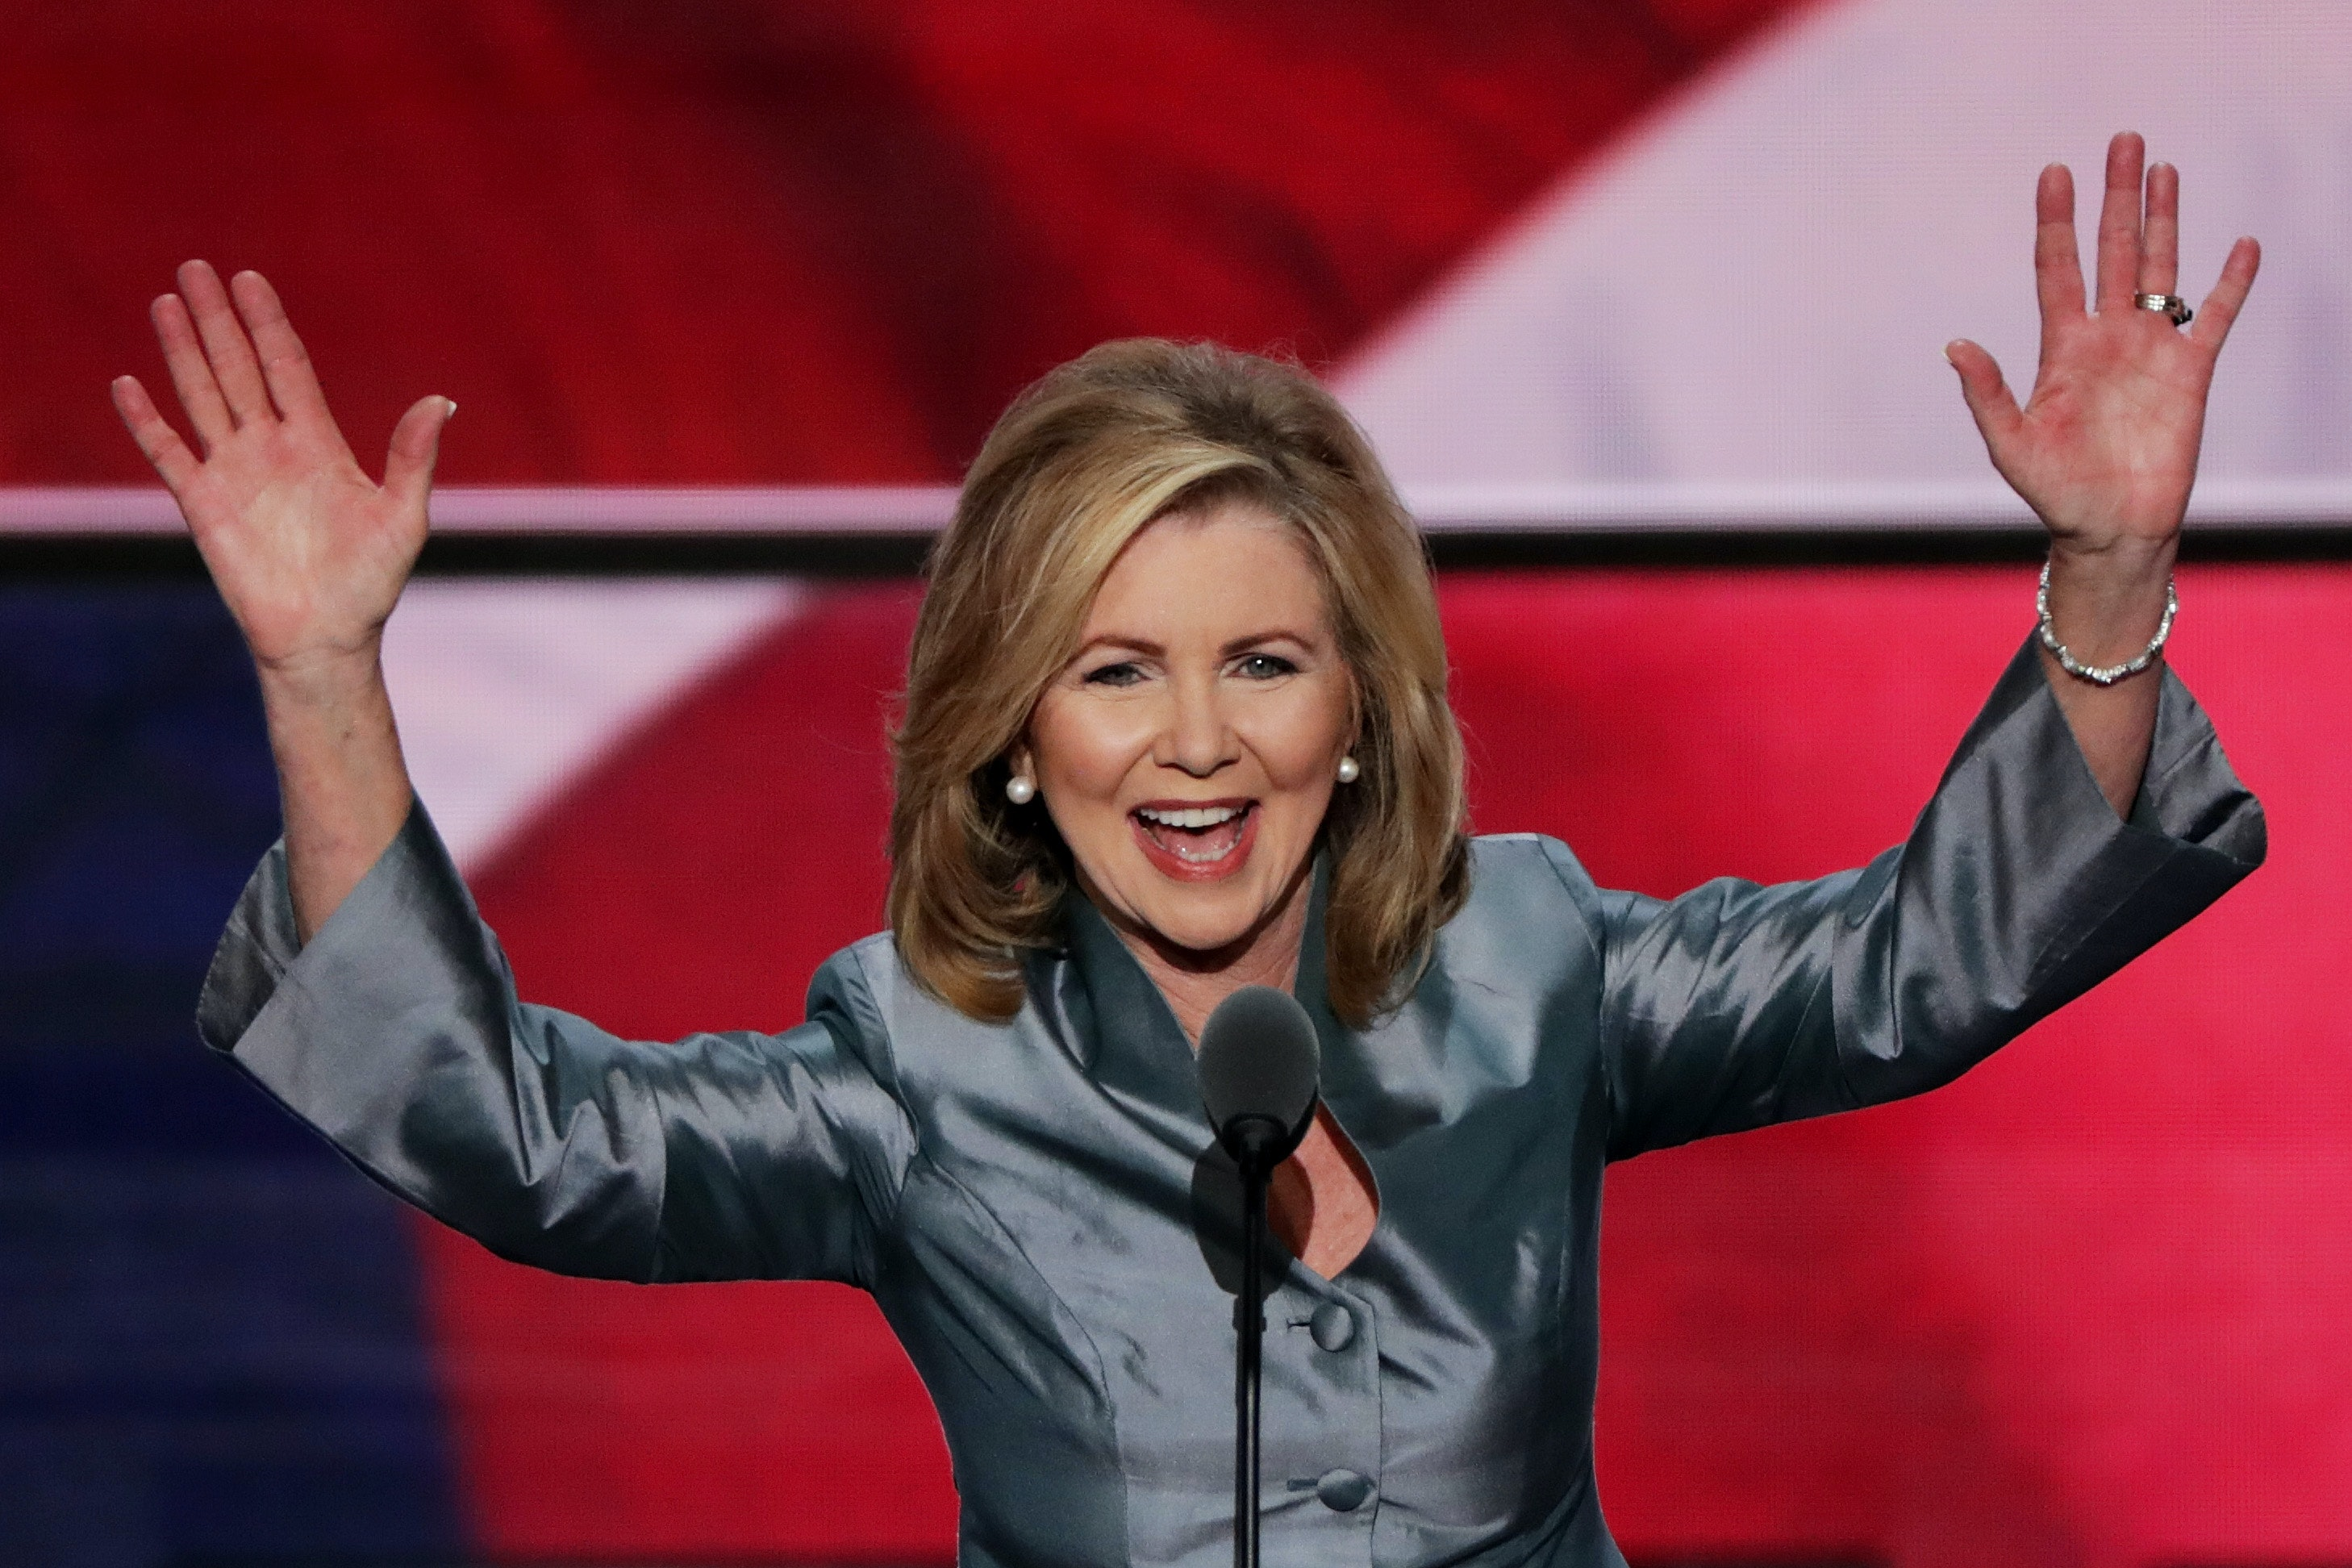 Rep. Marsha Blackburn's campaign announcement pulled from Twitter